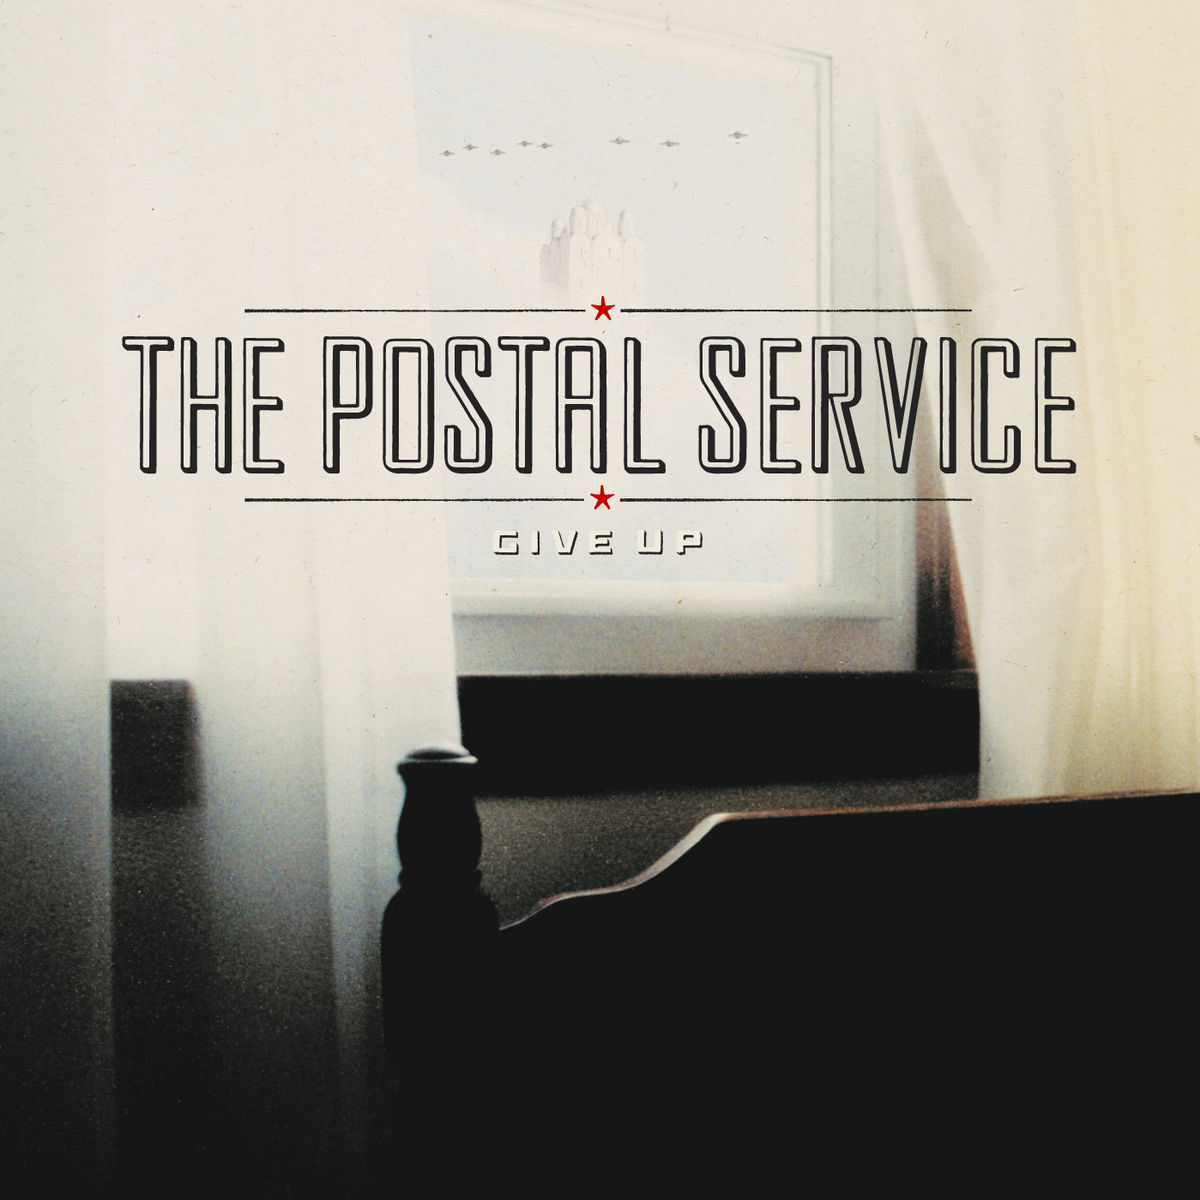 The Postal Service Postalservice Twitter